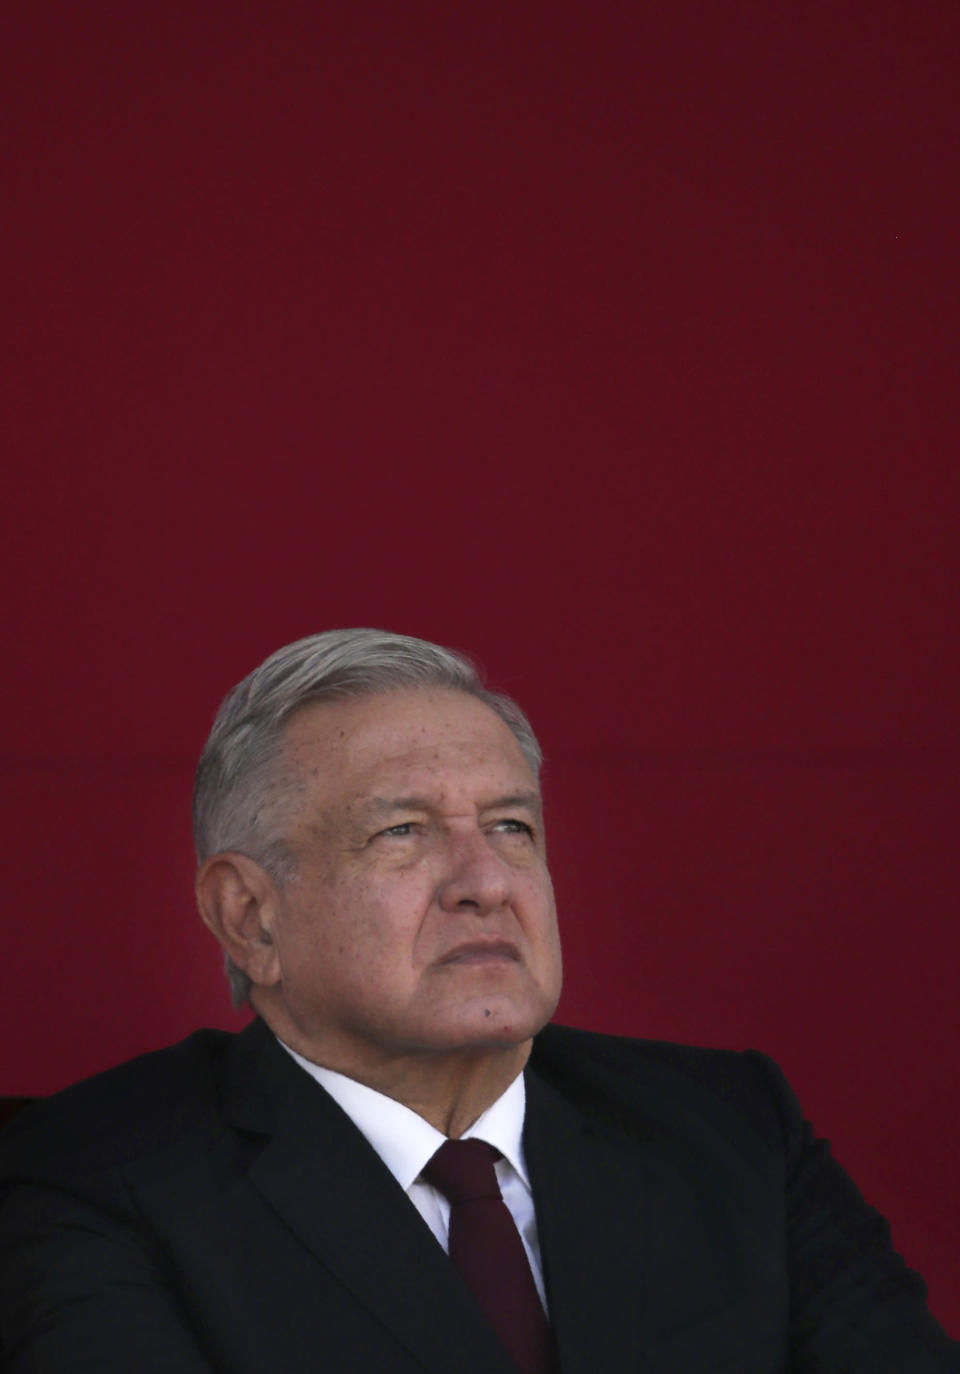 FILE - In this Feb. 9, 2021 file photo, Mexican President Andres Manuel Lopez Obrador attends a ceremony marking the 108th anniversary of the Marcha de la Lealtad or March of Loyalty, at Chapultepec Castle in Mexico City. López Obrador's support of a gubernatorial candidate accused of sexual assaults has opened a rift in the party he founded. The president has dismissed the allegations as a political attack on the candidate and himself. (AP Photo/Marco Ugarte, File)